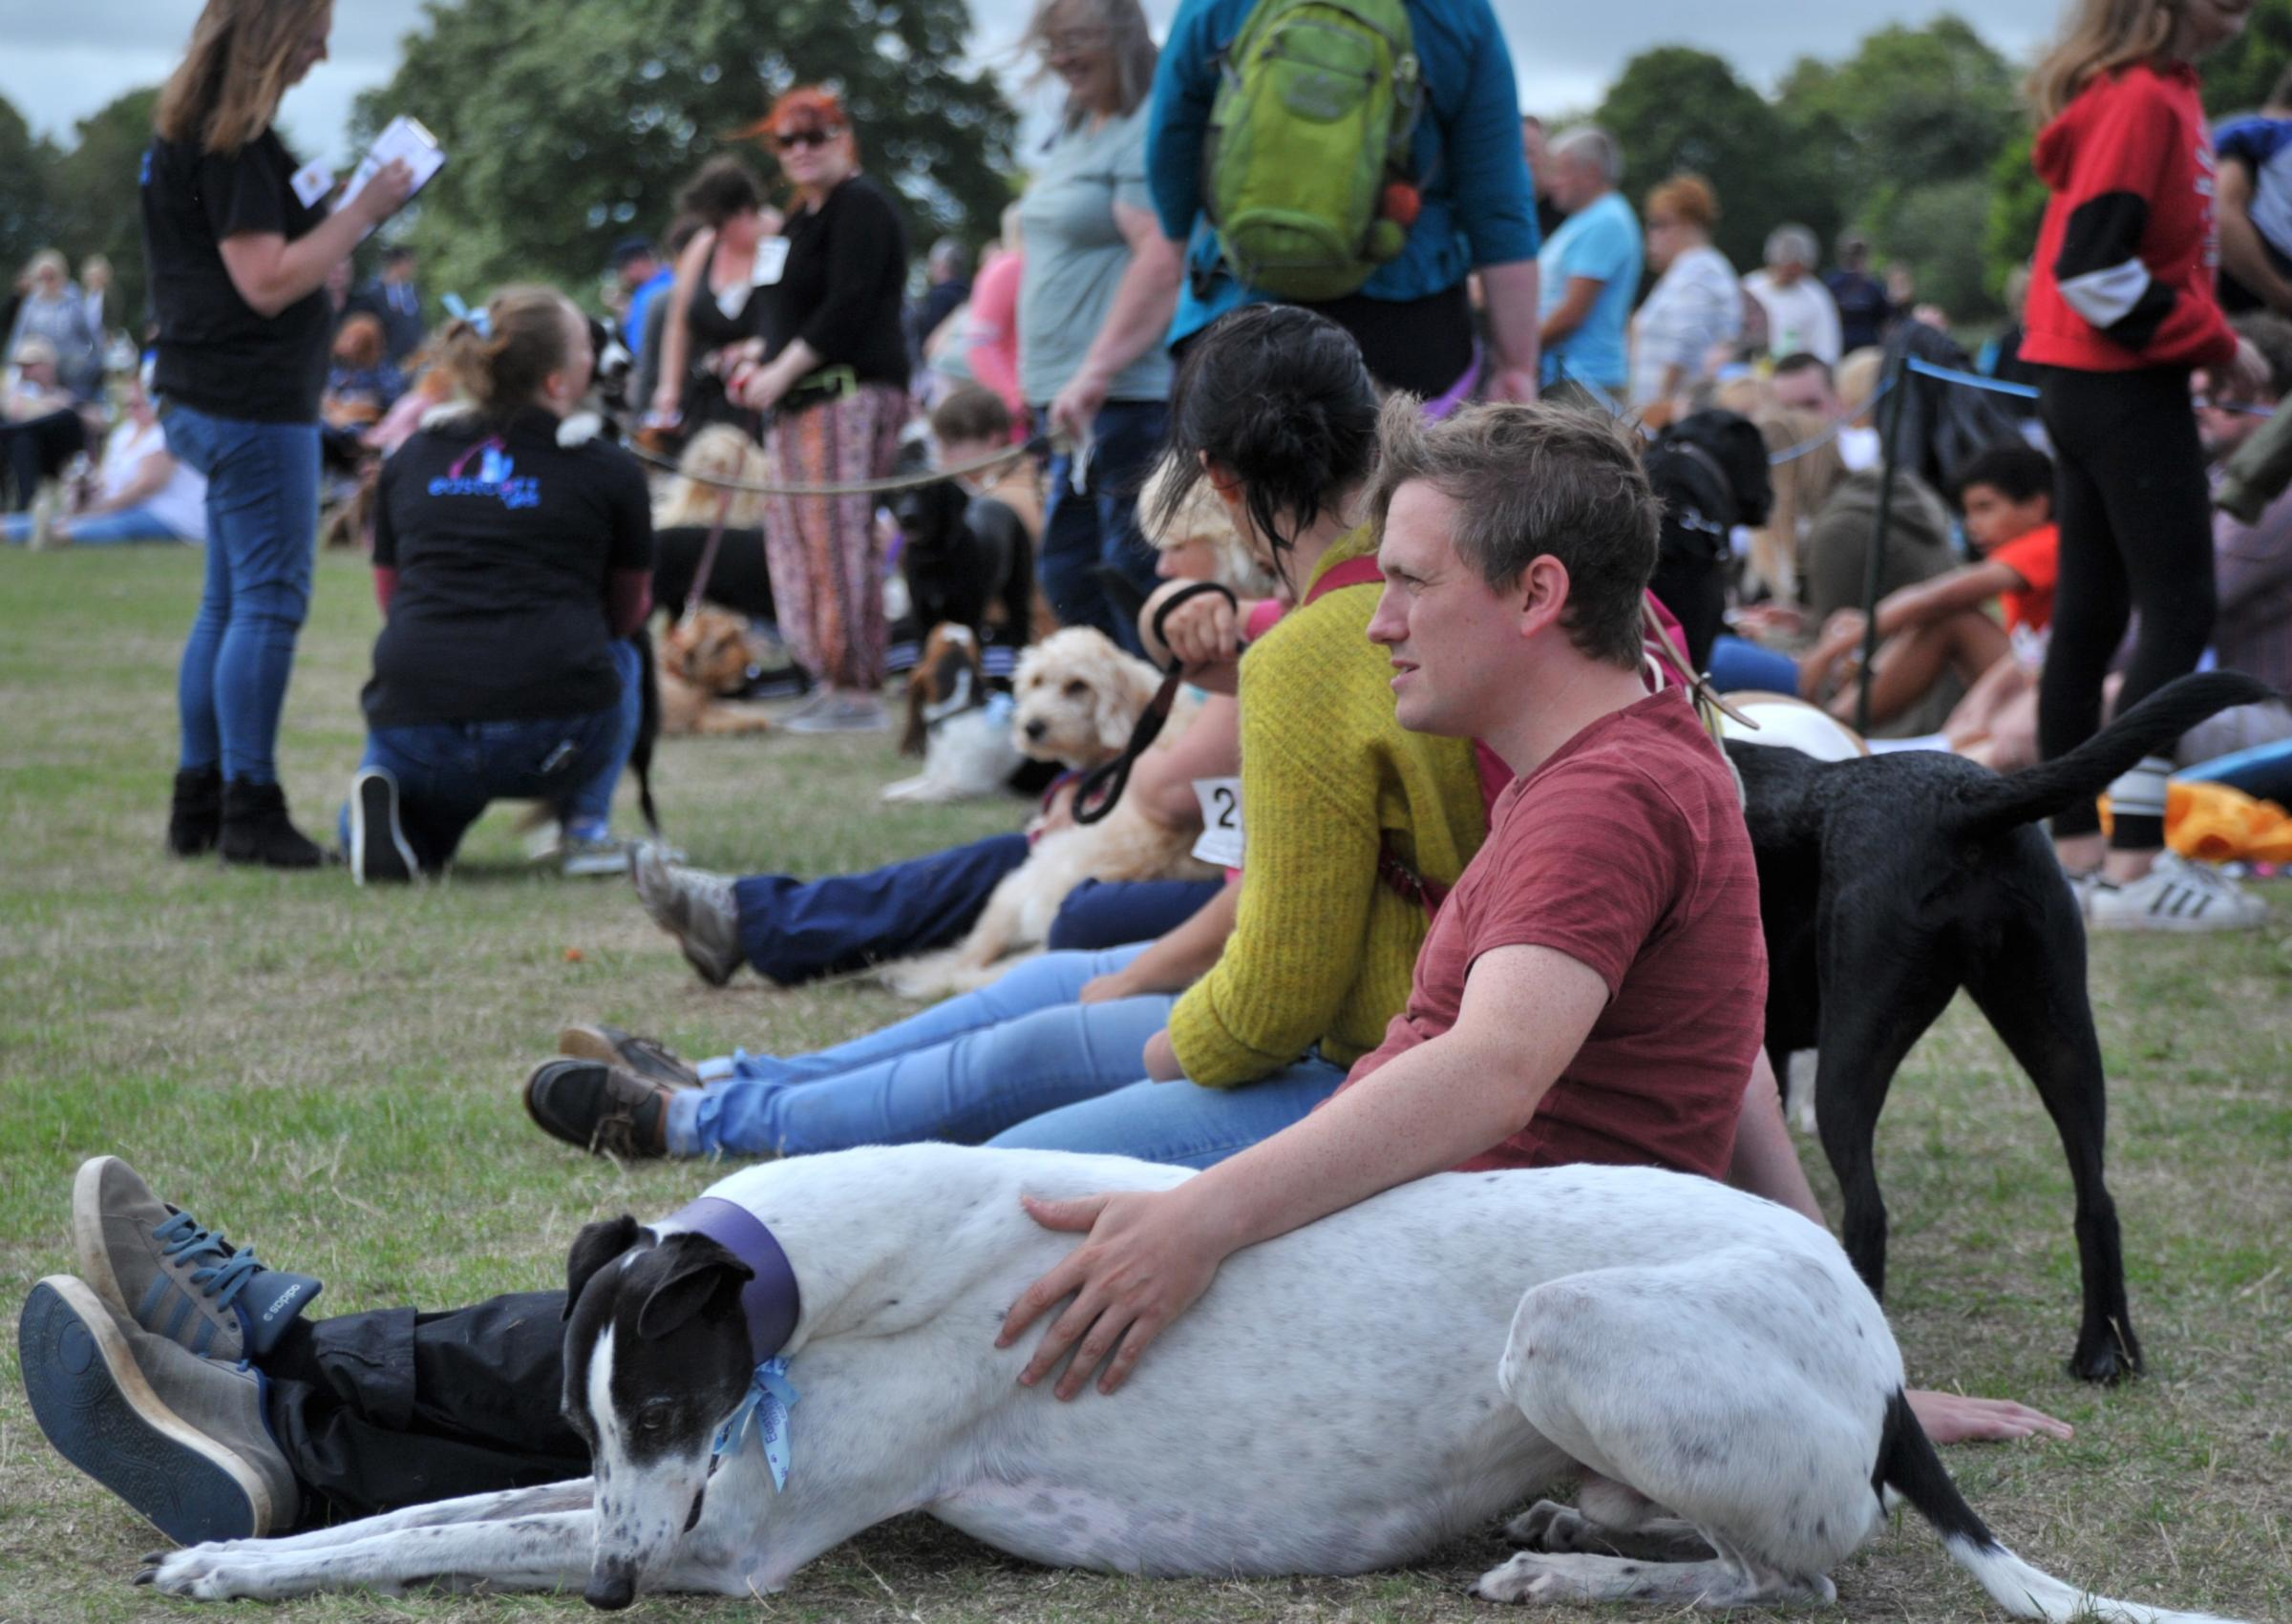 Lydiard Bark Dog Show Organised by Eastcott Vets. 10 classes, plus dog training, stalls, etc at Lydiard Park. Pic - gv Date 19/8/18 Pic by Dave Cox